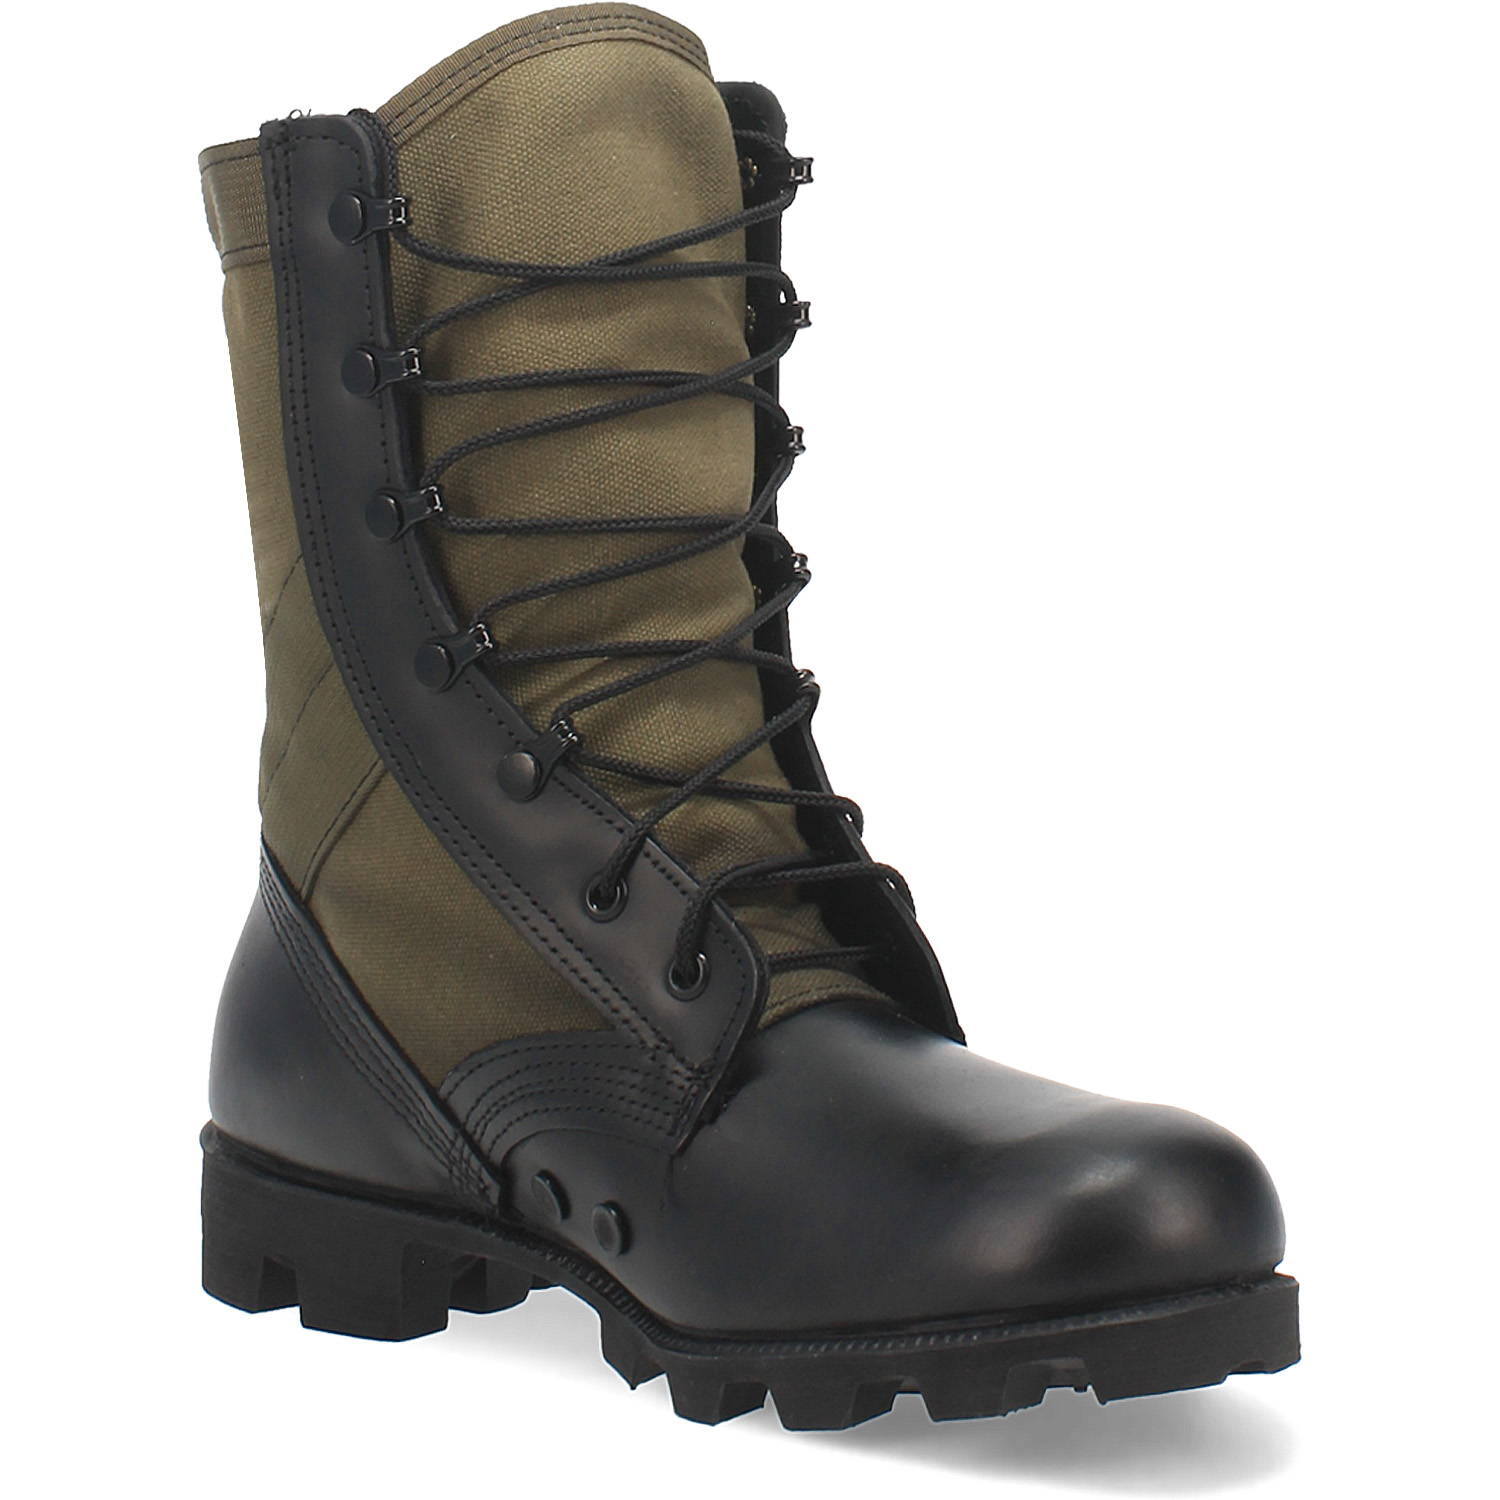 Vietnam Era Jungle Boot